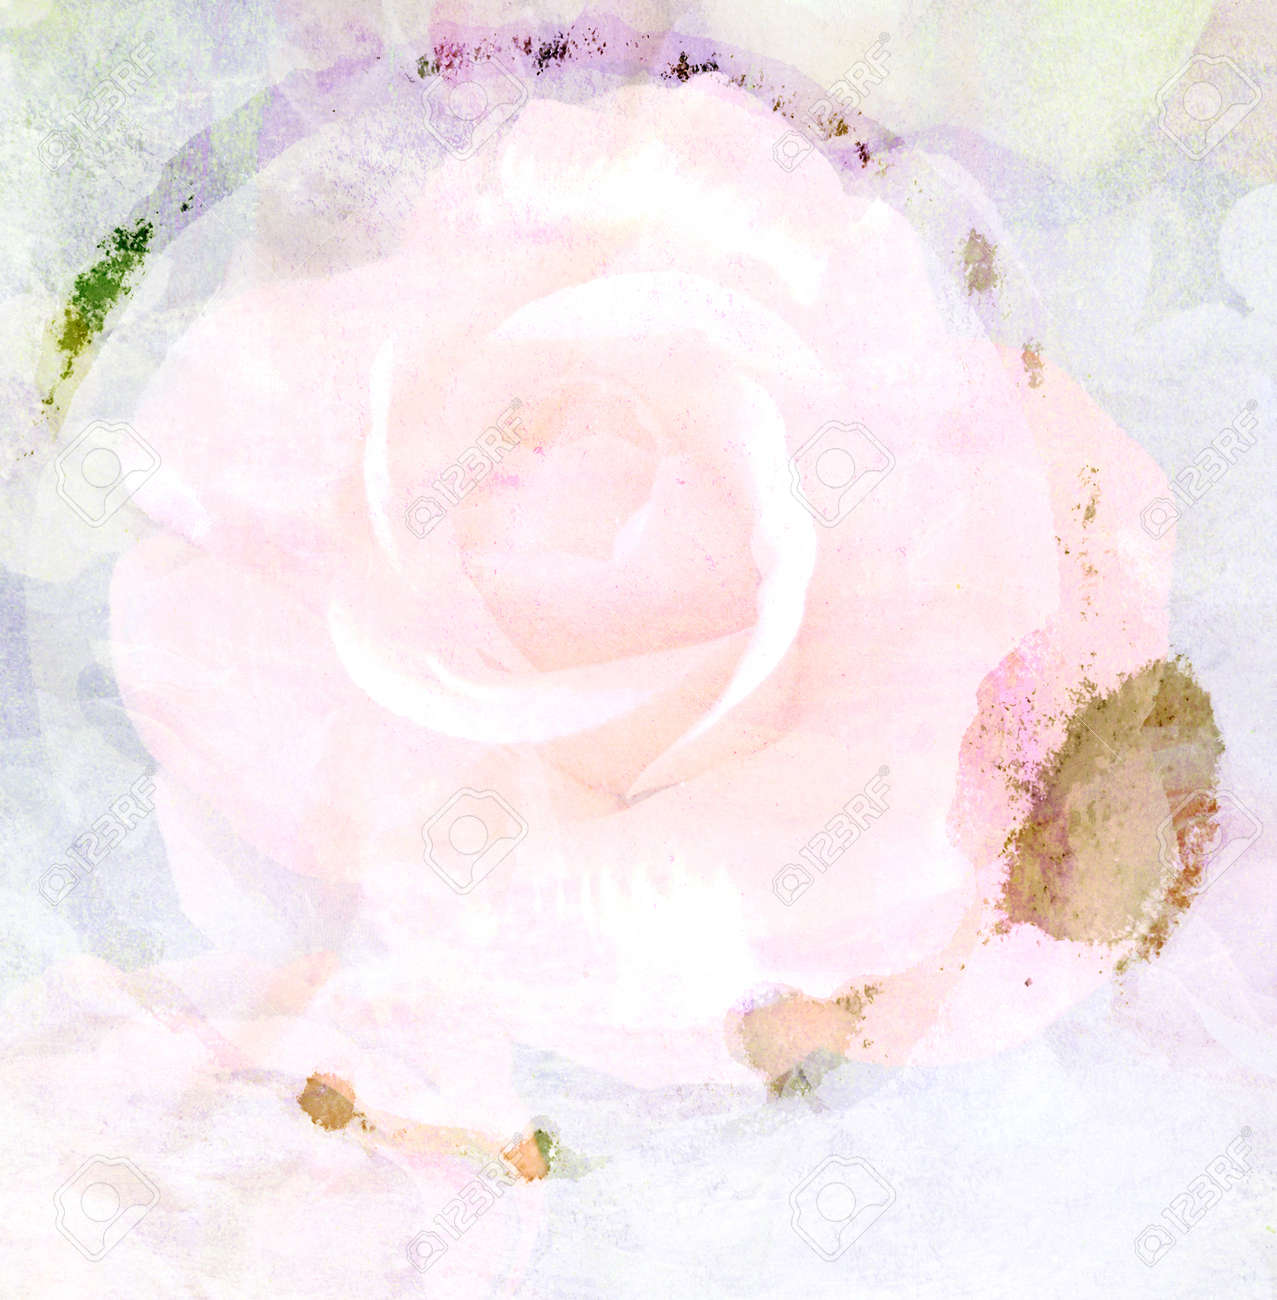 Bottom Cup Stain Of Water On Rose Flower Paper Background Stock